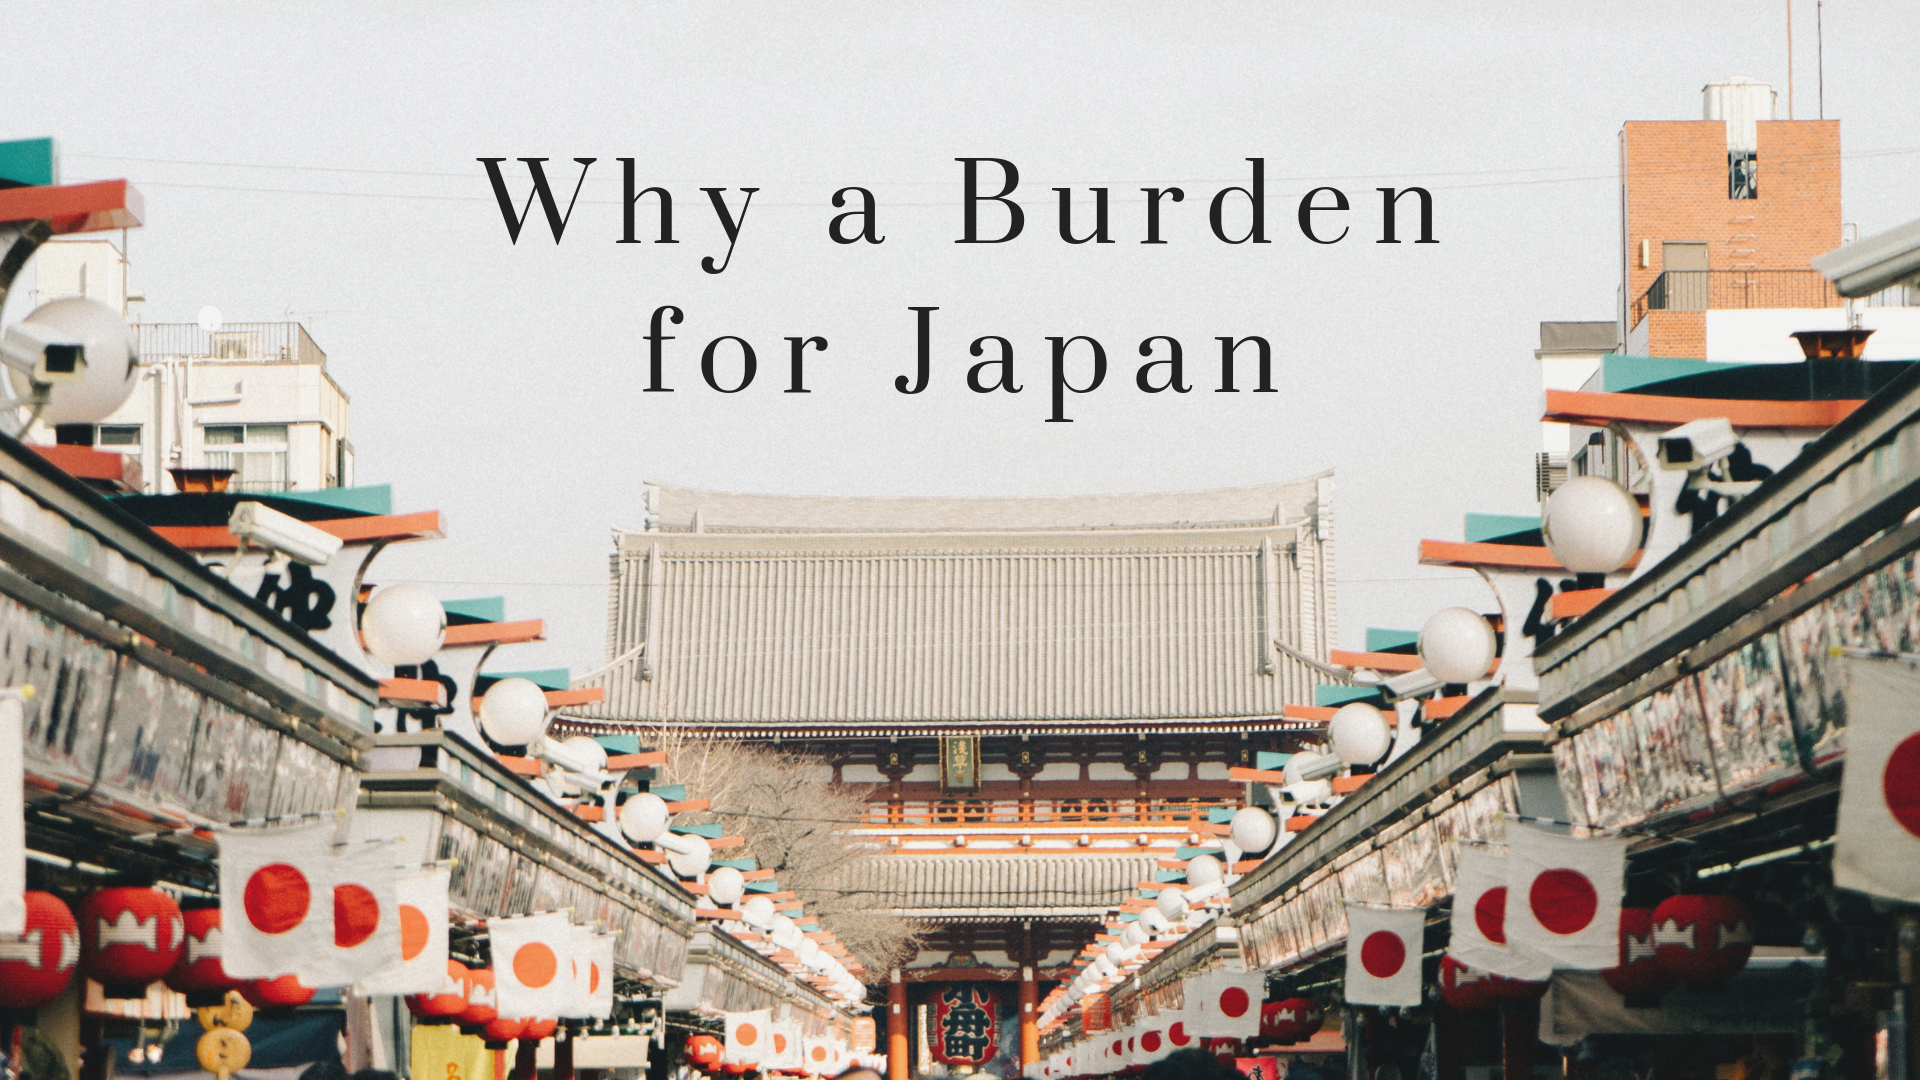 Why a Burden for Japan